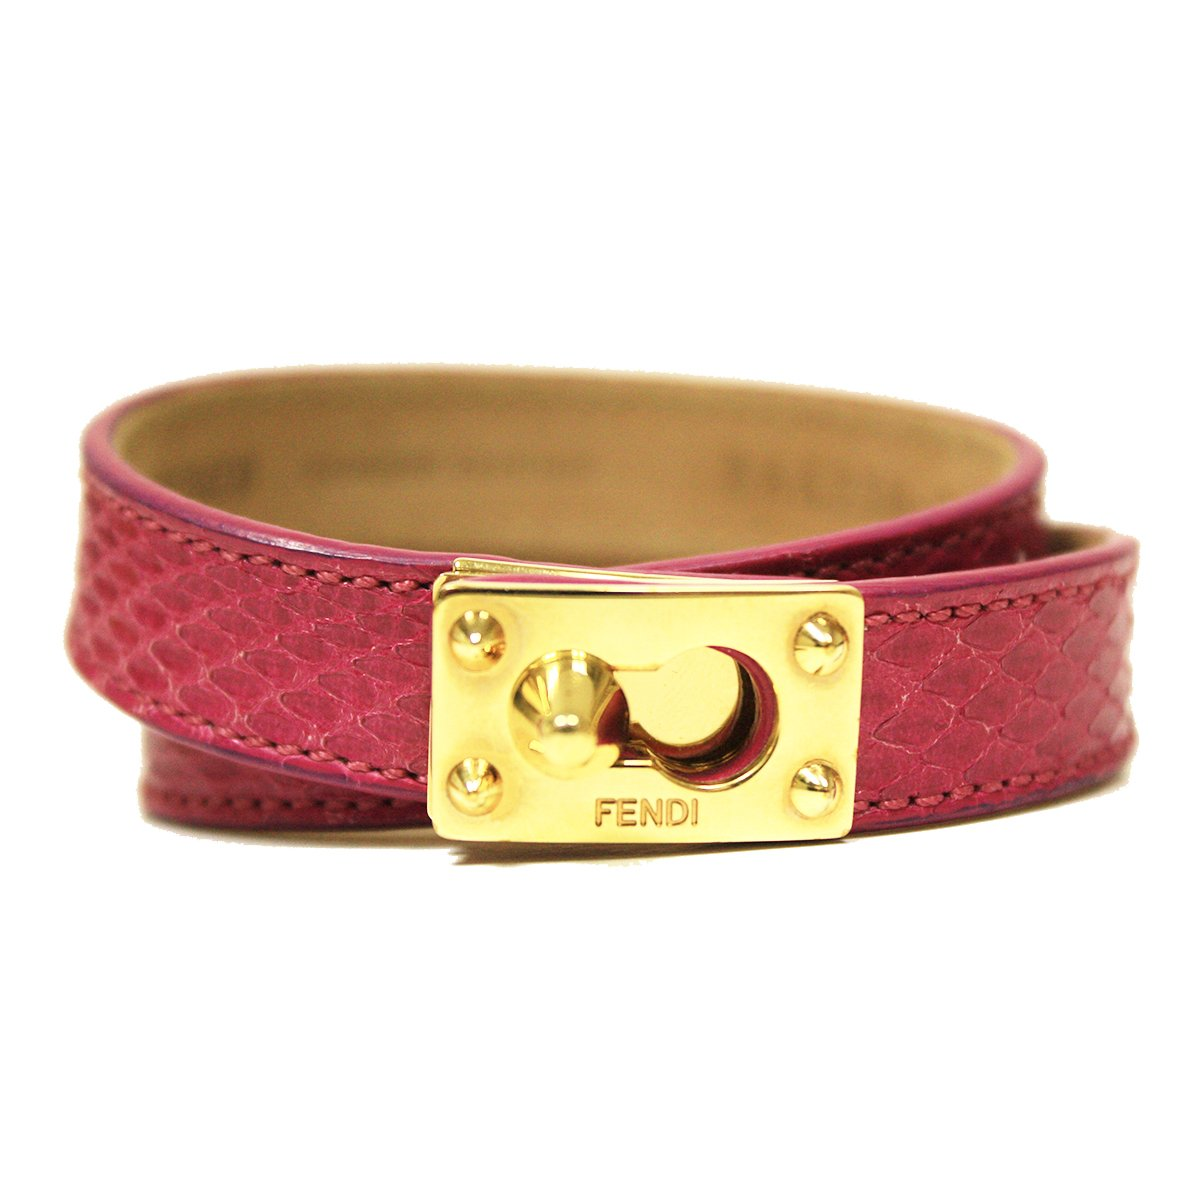 Fendi Pink Python Leather Double Stranded Bracelet 8AG230